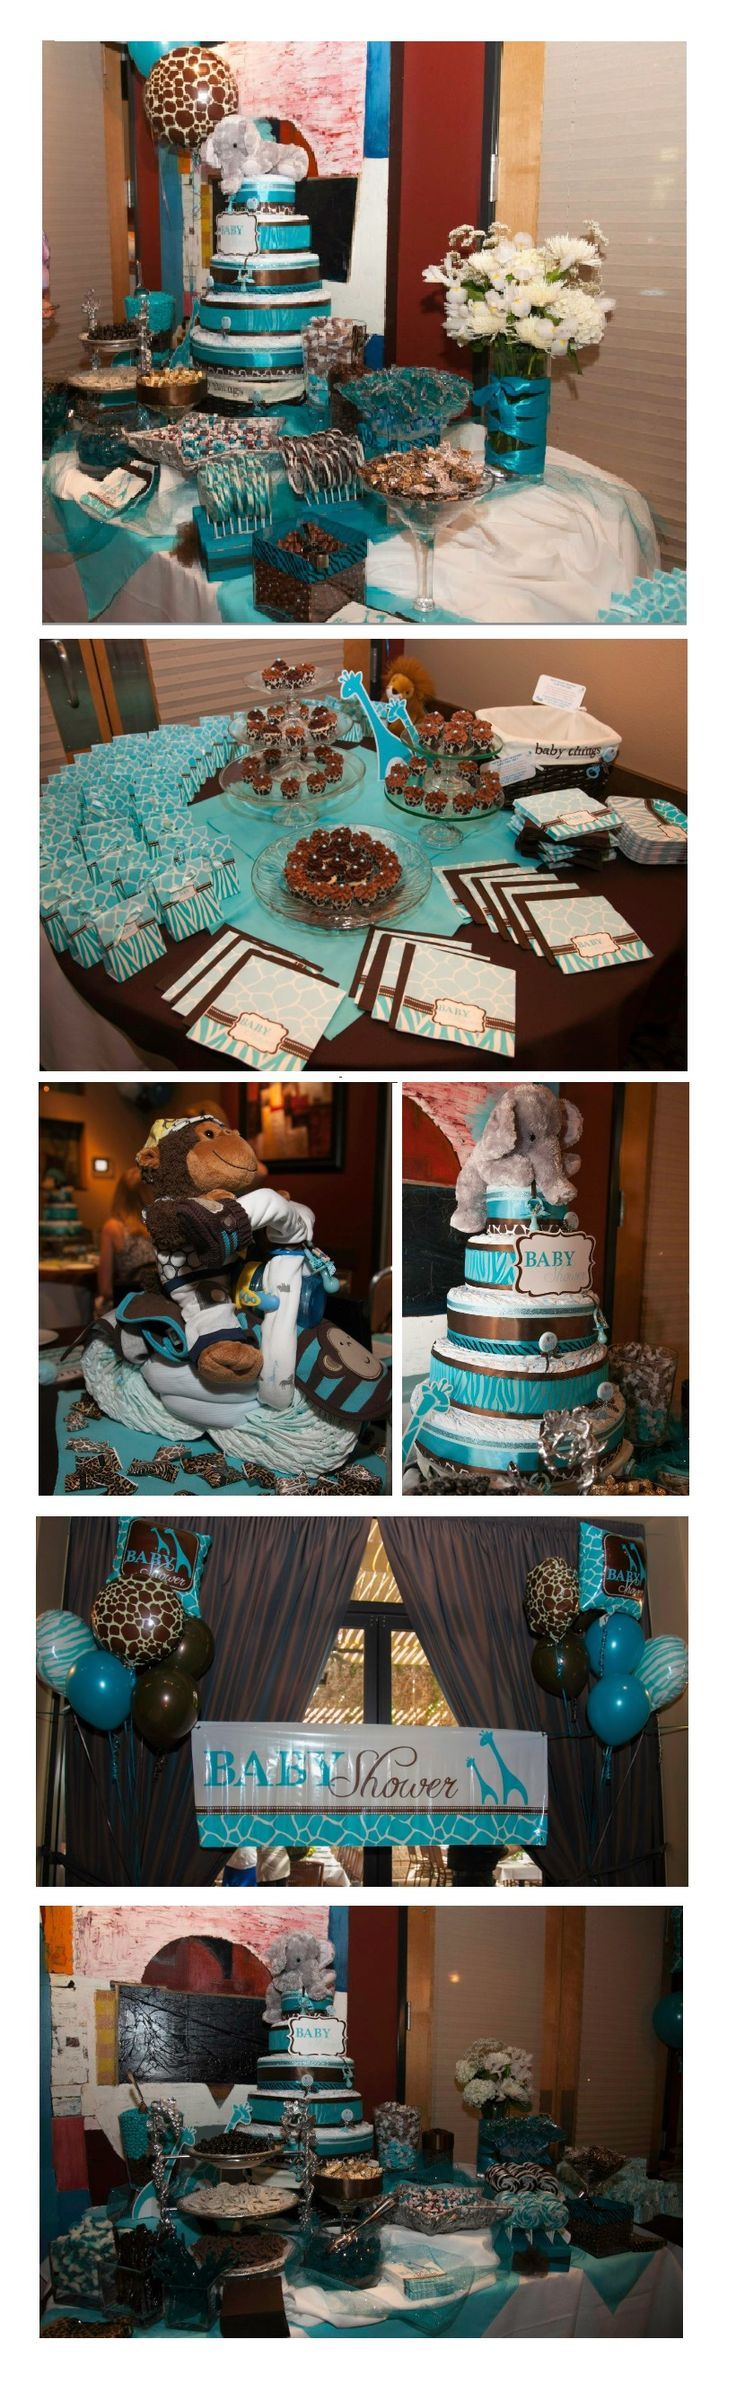 Ersilia's Boy Baby Shower